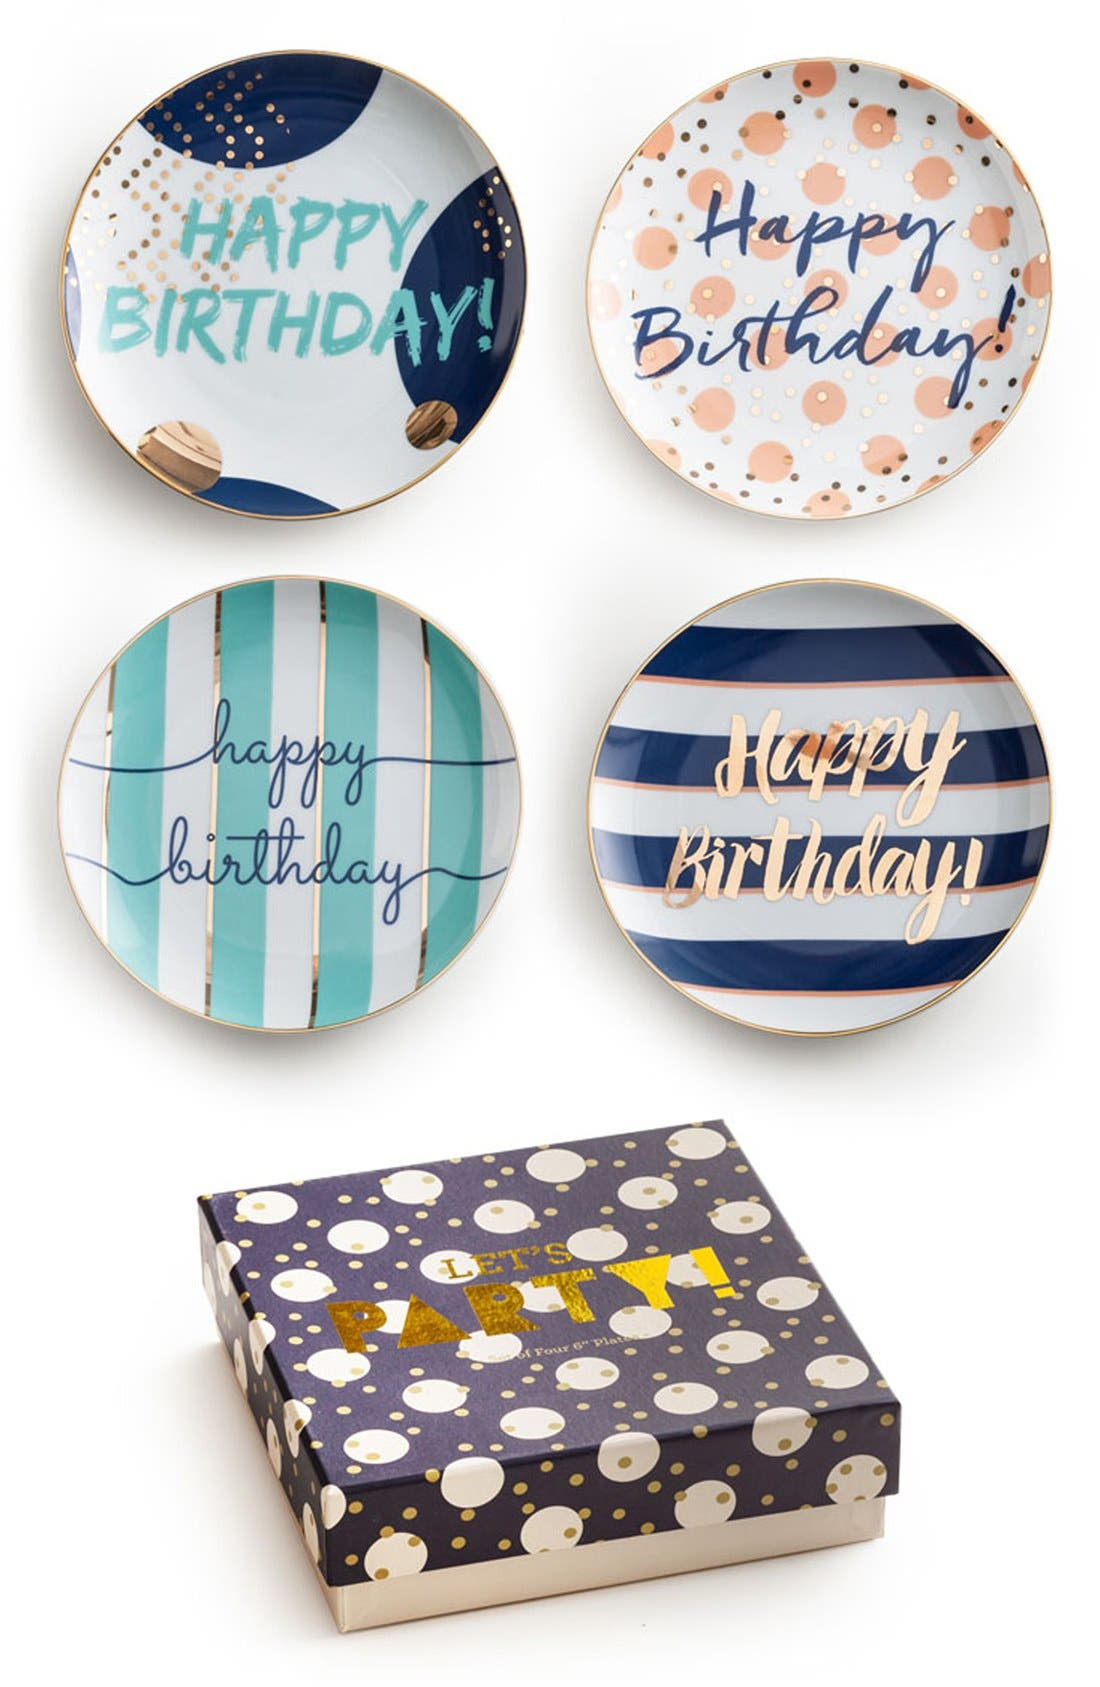 Rosanna 'Happy Birthday' Porcelain Plates (Set of 4)